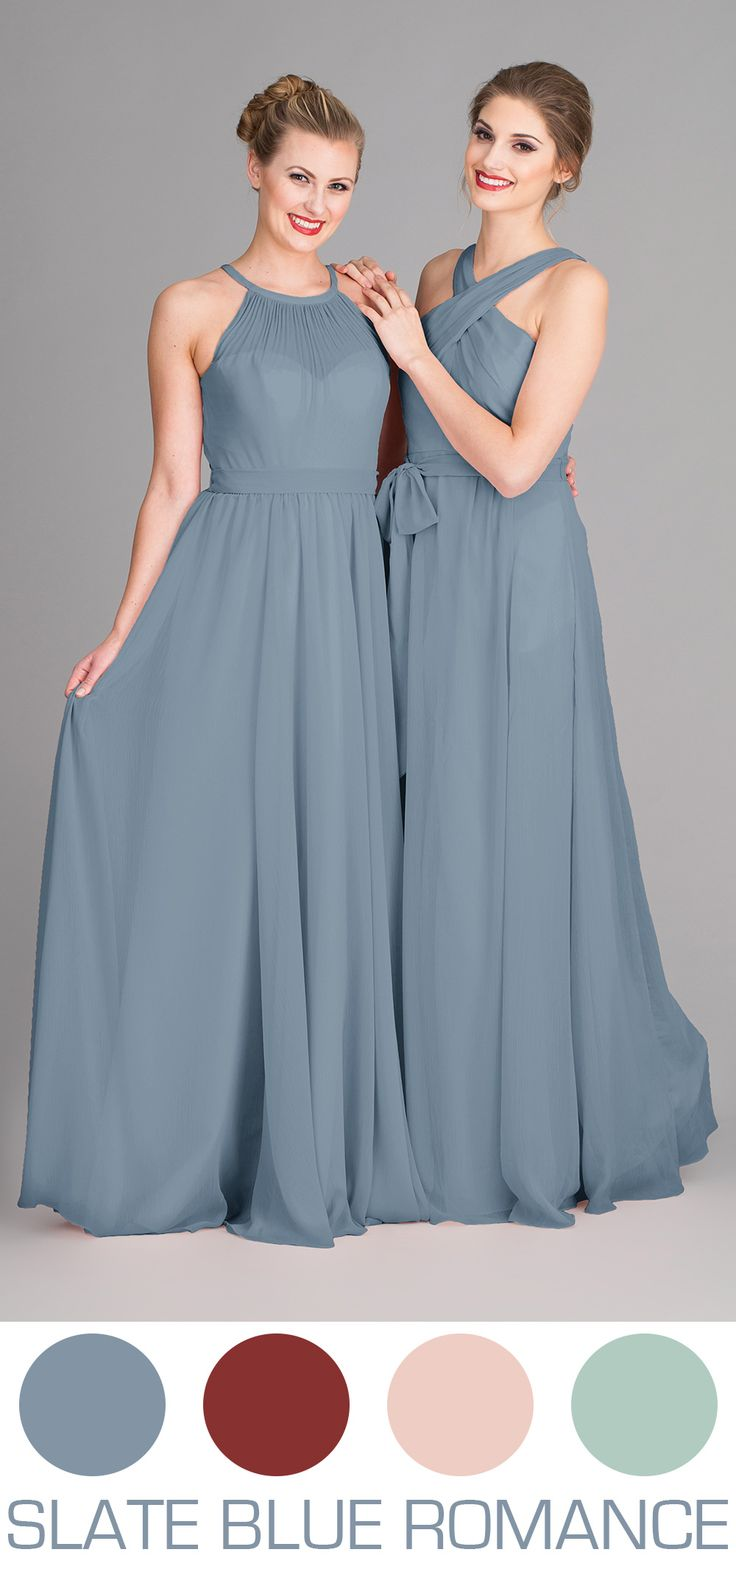 799 best bridesmaids dresses images on pinterest marriage 799 best bridesmaids dresses images on pinterest marriage winter weddings and wedding ombrellifo Image collections